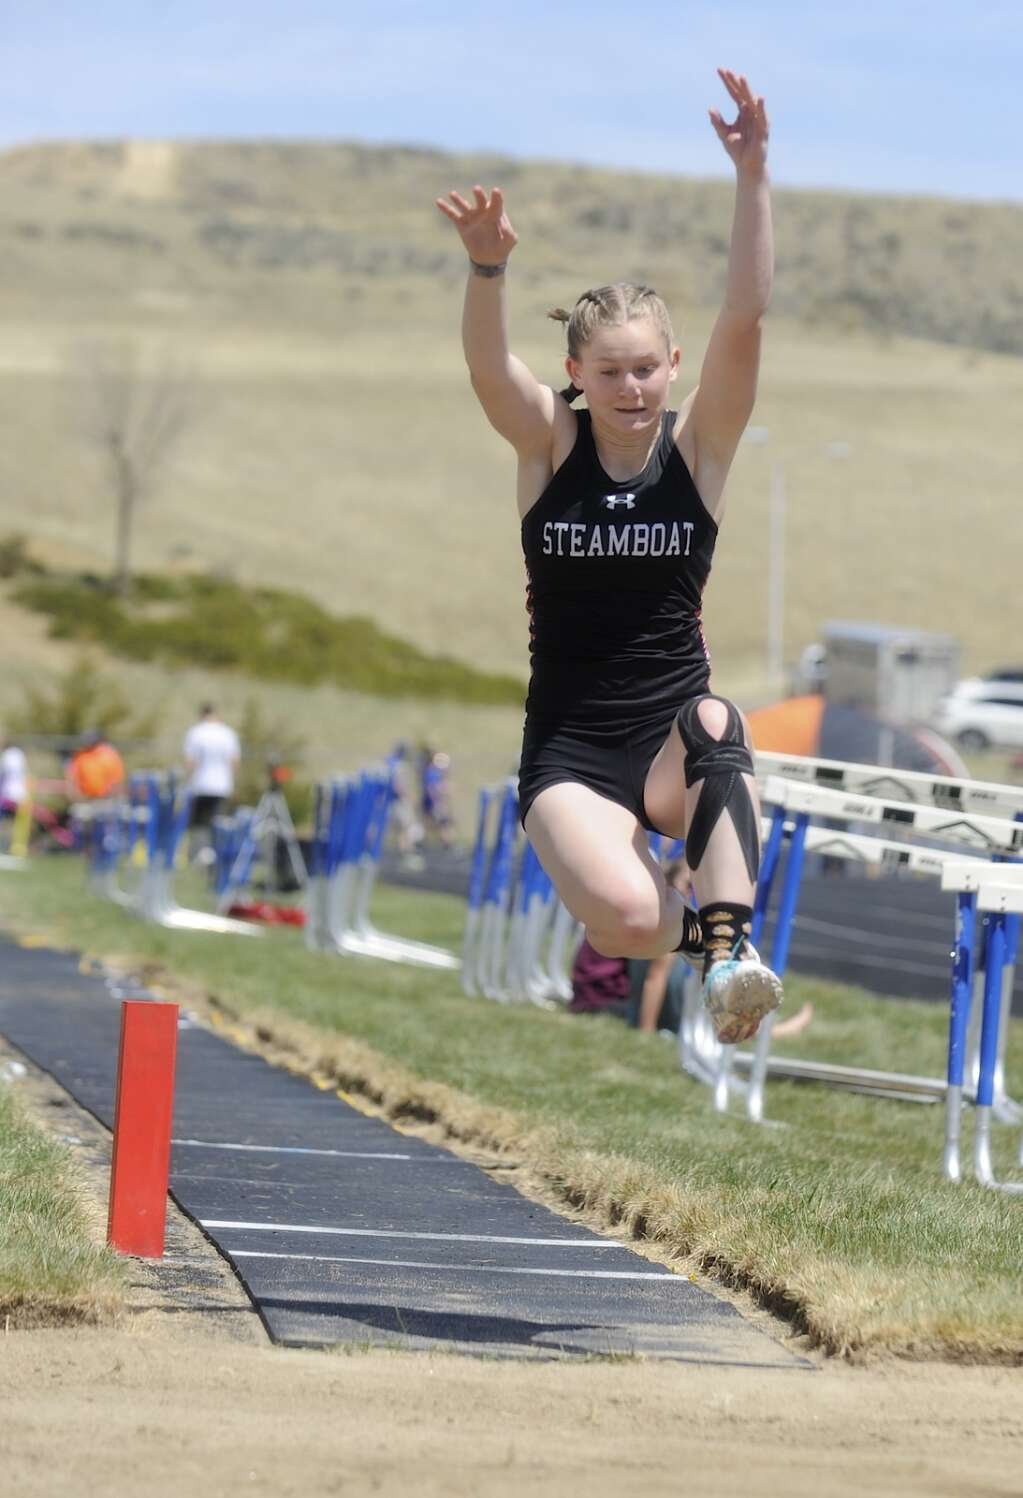 A Steamboat Springs athlete competes in long jump at the Clint Wells Invitational in Craig on Friday. (Photo by Shelby Reardon)